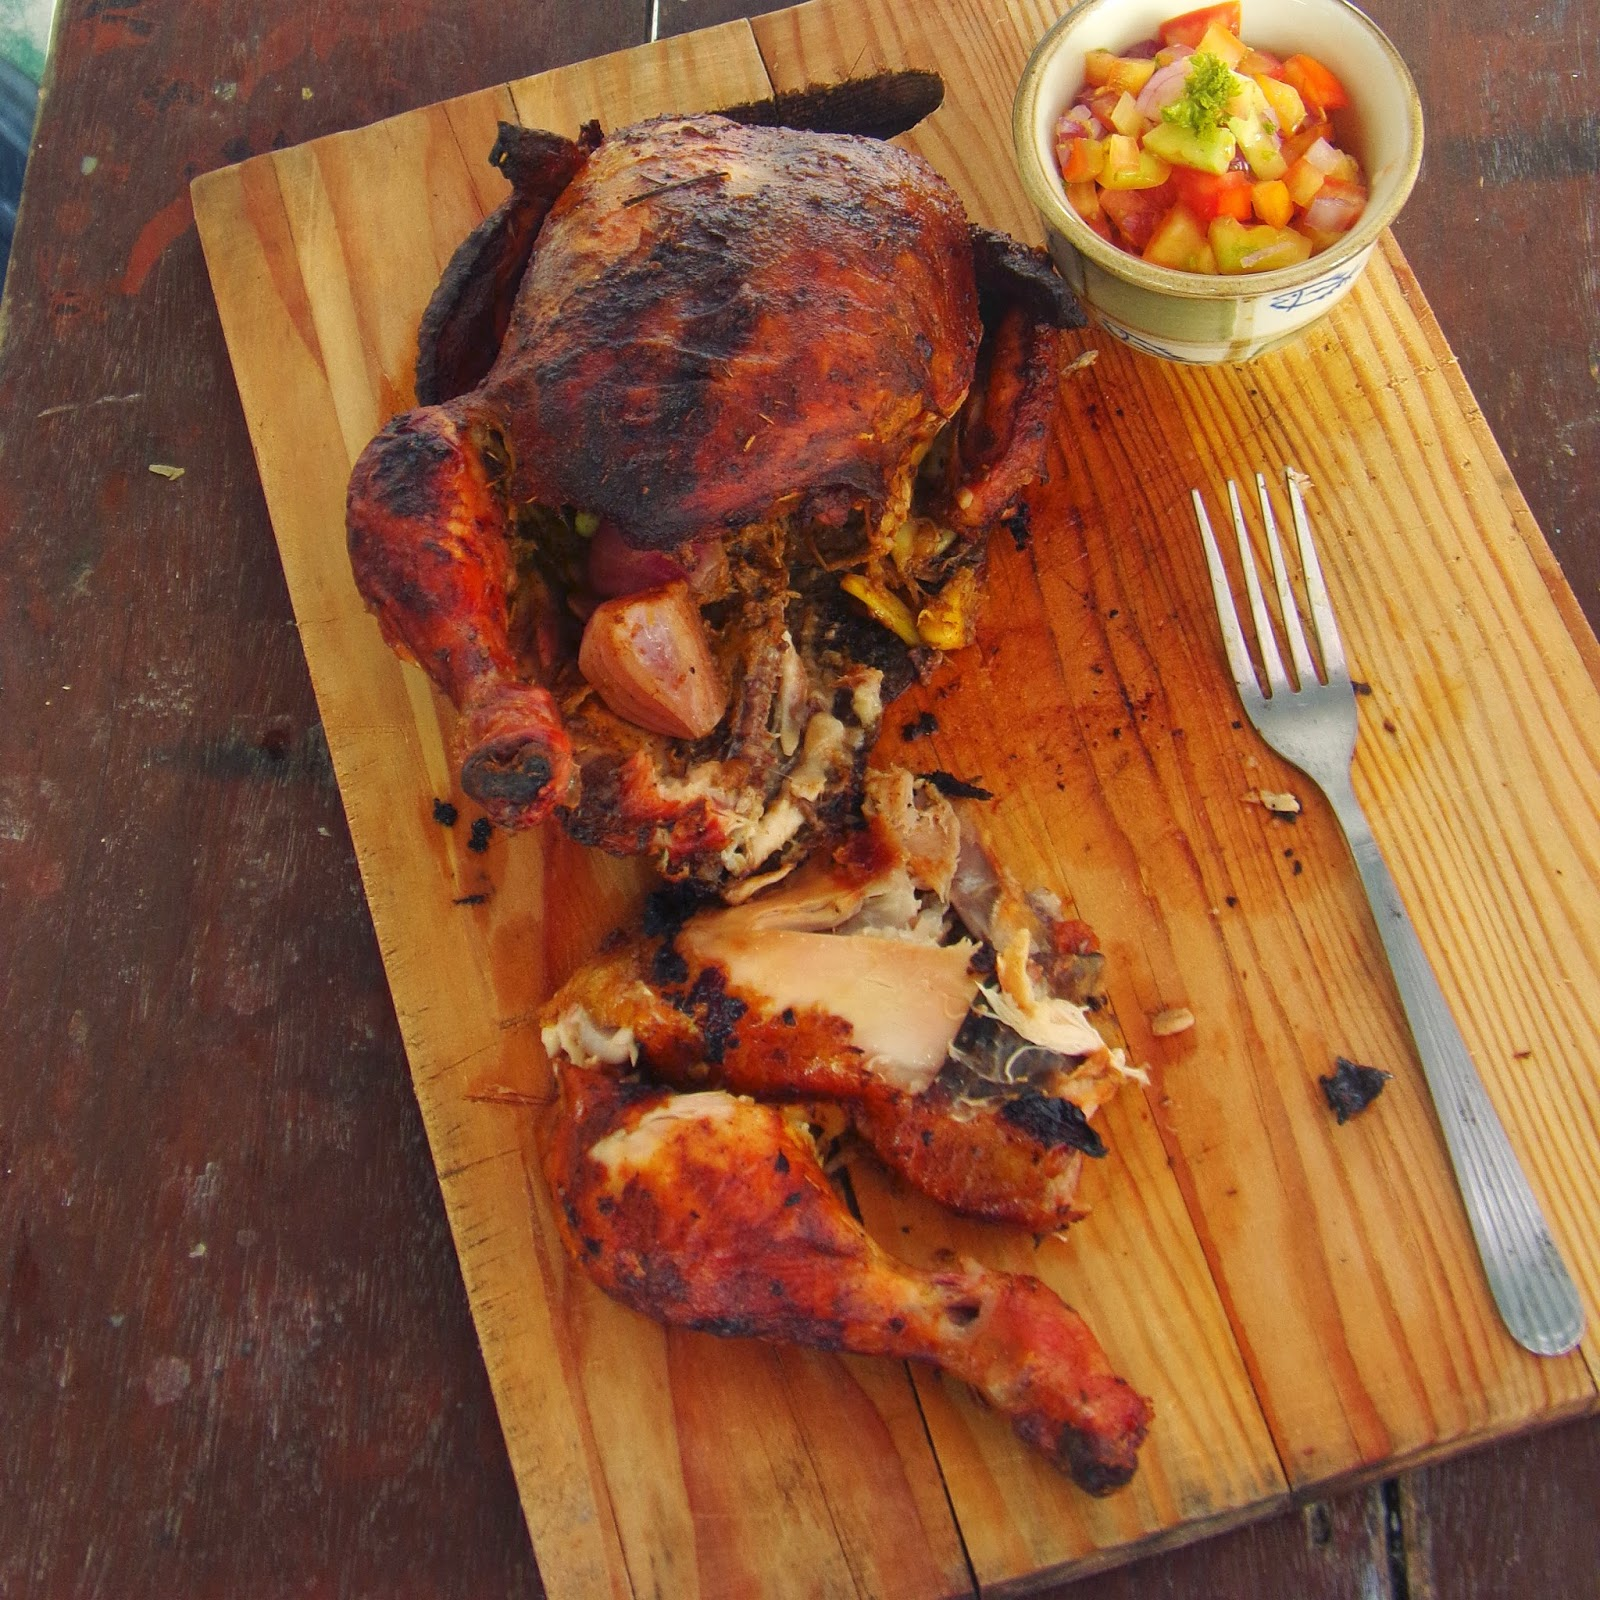 whole roasted chicken, best roasted chicken, roasted chicken recipes, roasting a chicken, roasted stuffed chicken,